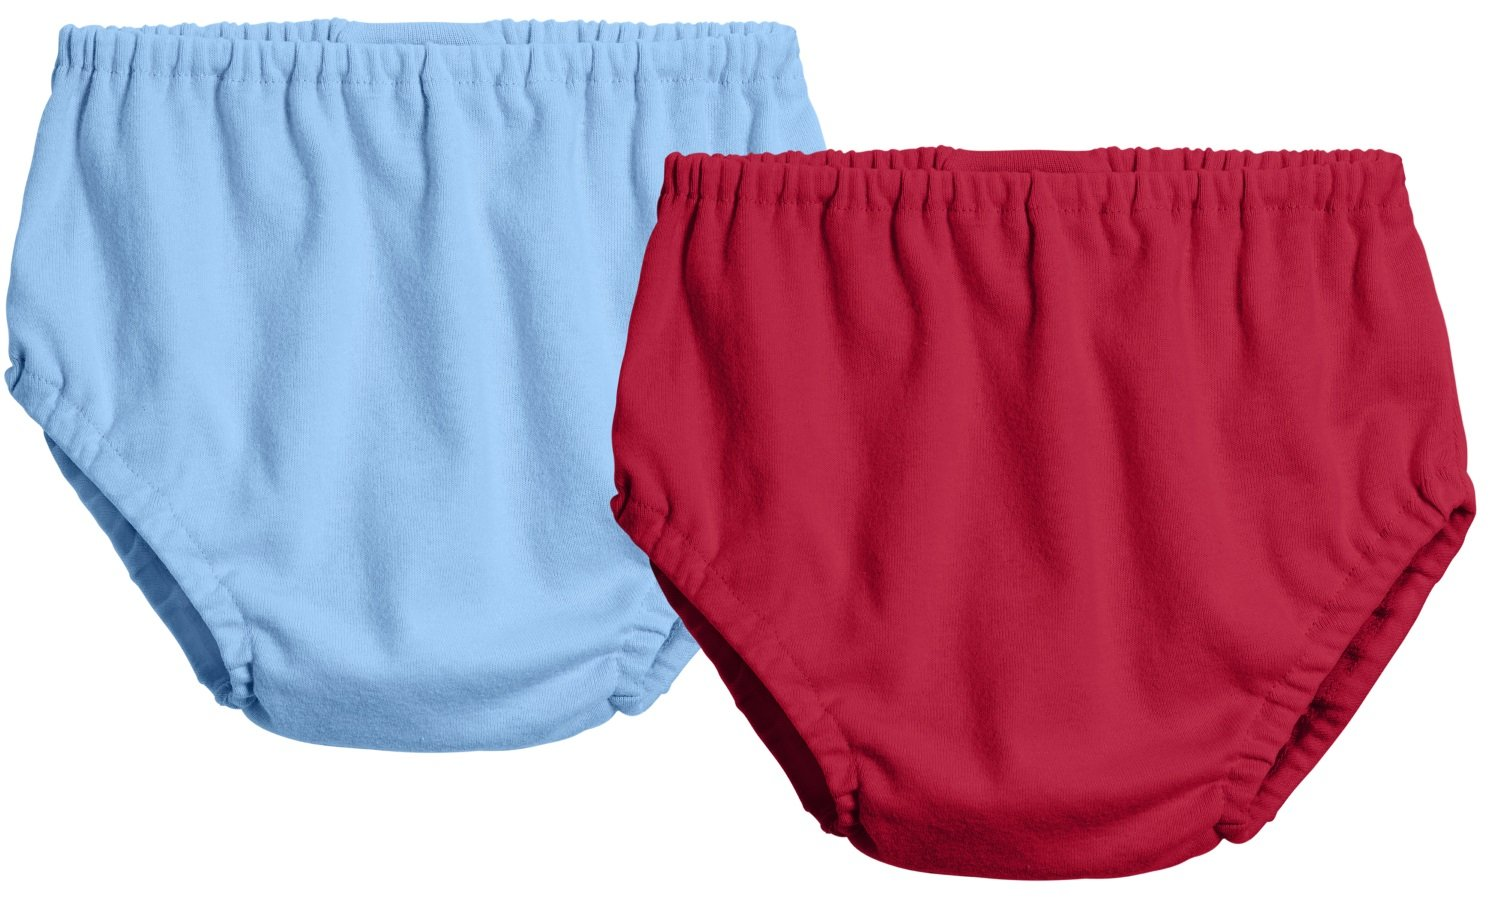 City Threads 2-Pack Baby Girls' and Baby Boys' Unisex Diaper Covers Bloomers Soft Cotton, Bright Lt. Blue/Red, Newborn